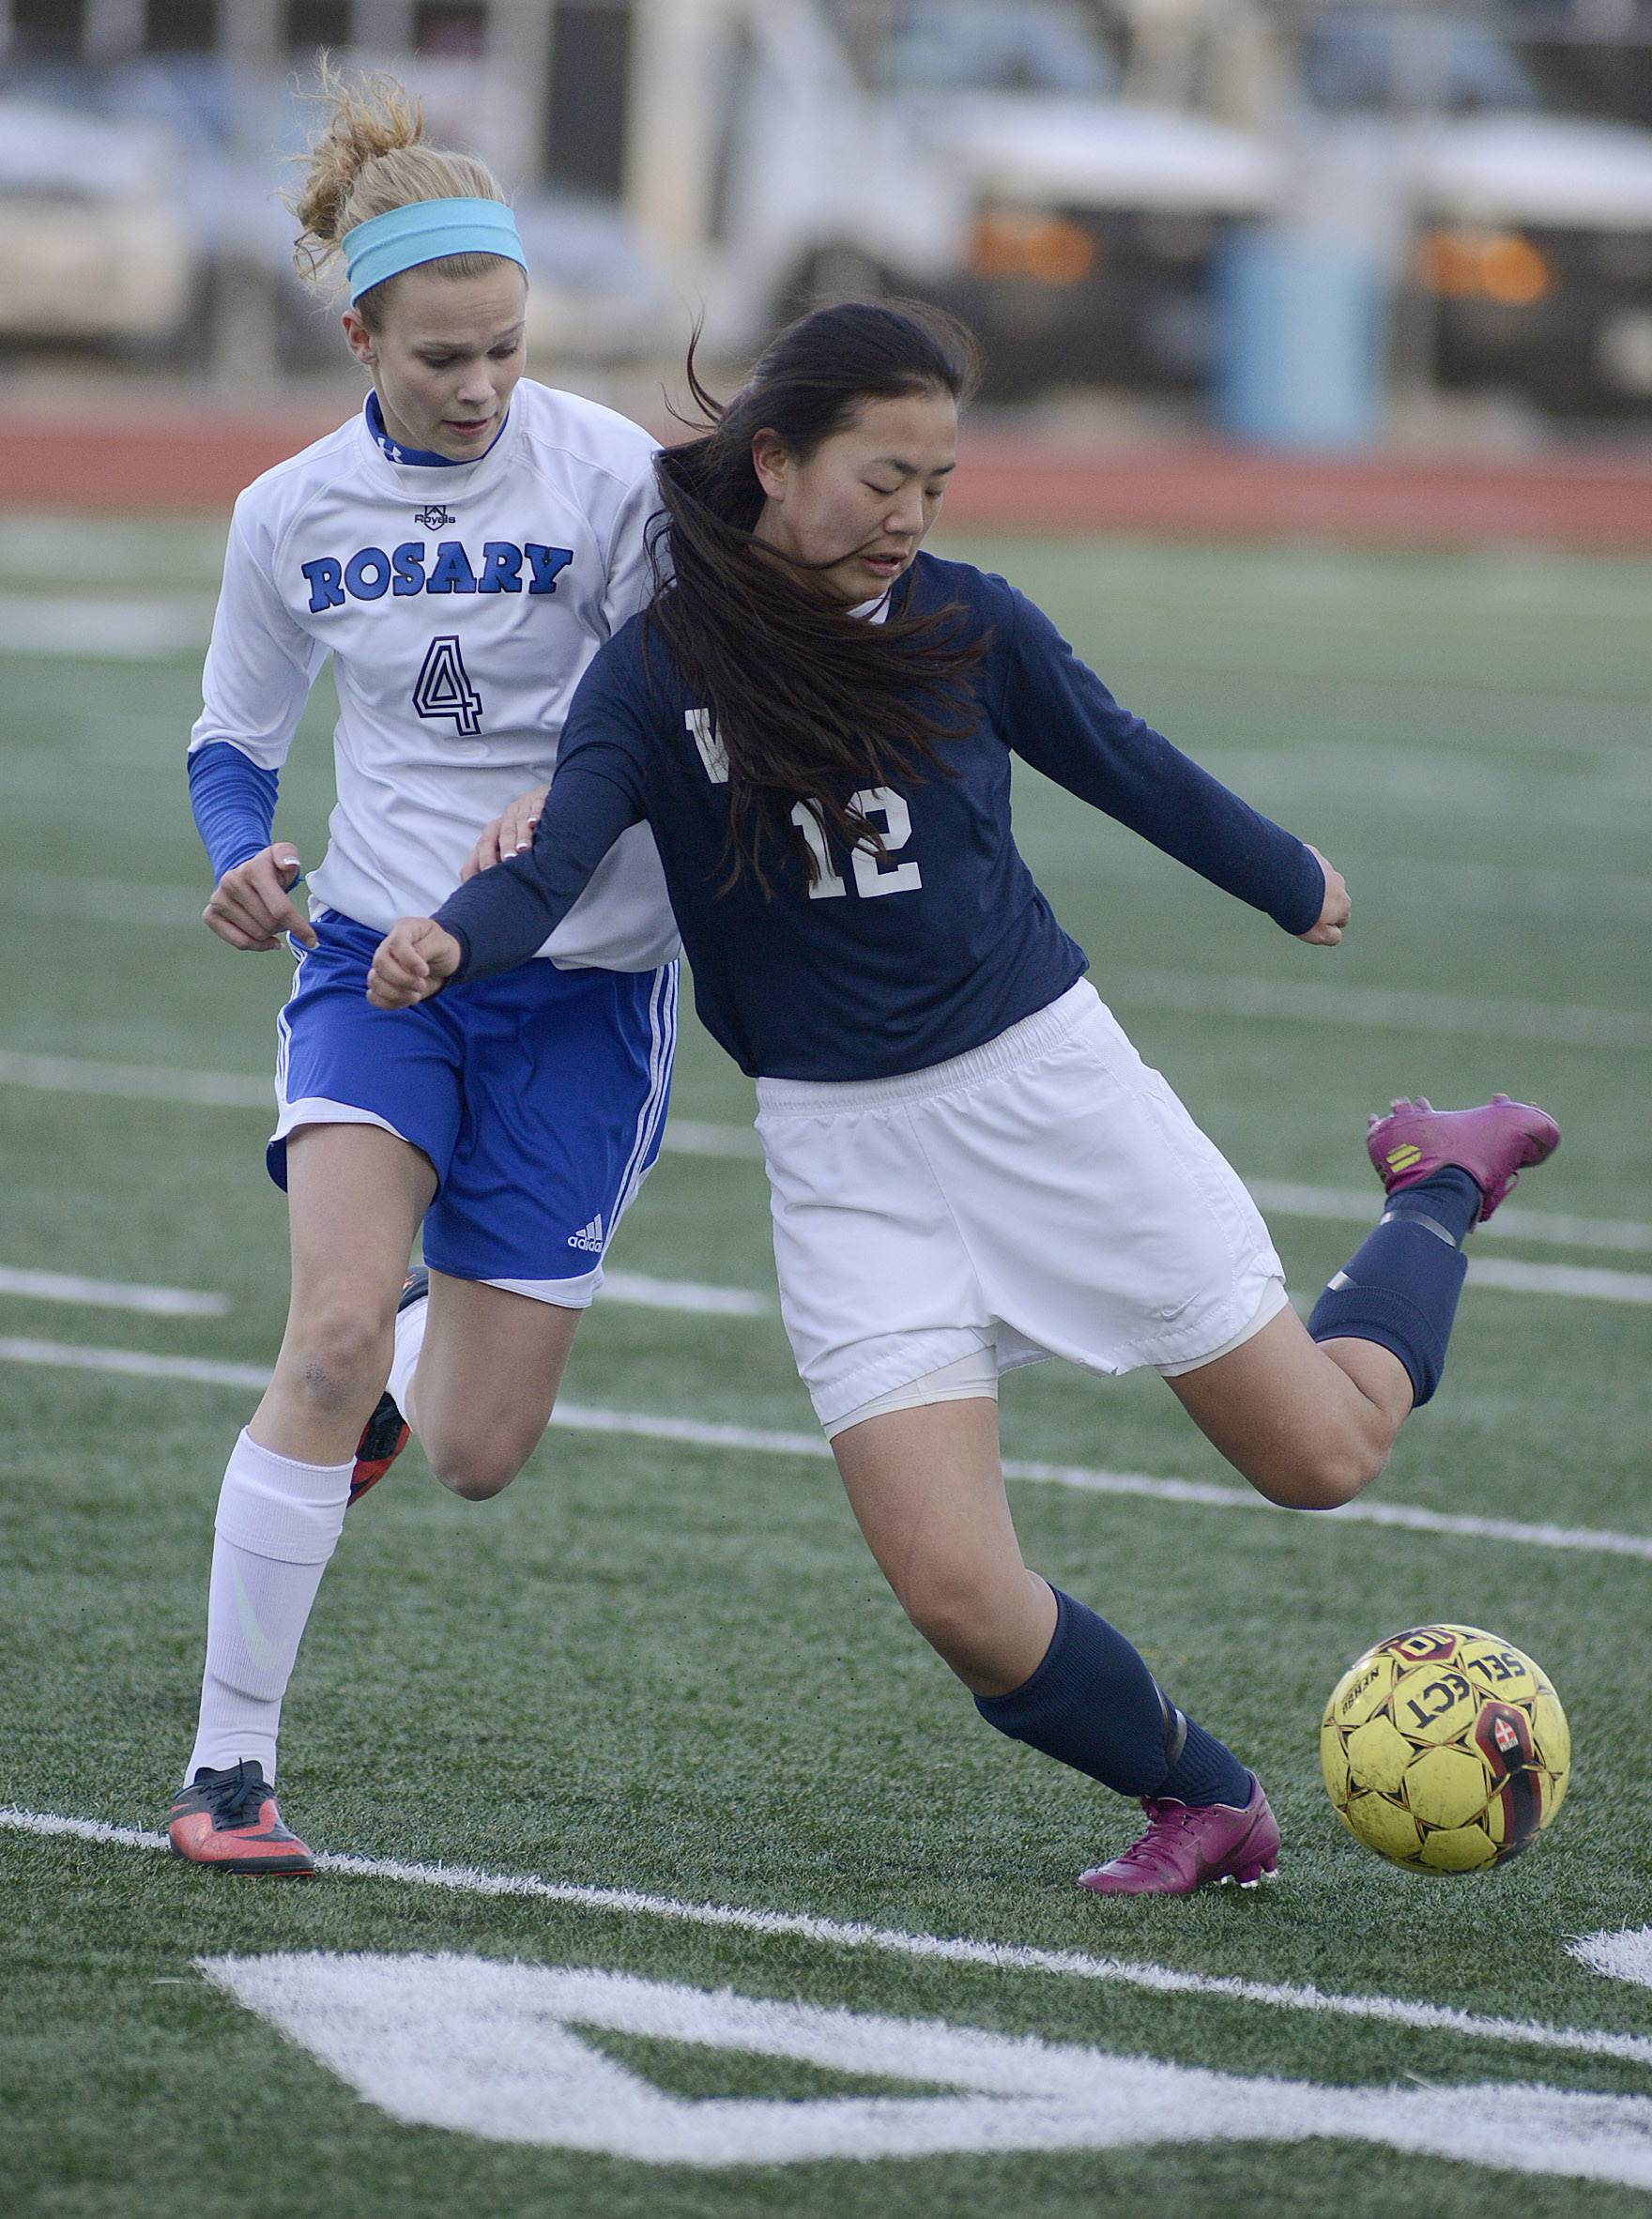 Rosary's Quincy Kellett, left, and West Aurora's Carli Hix fight for the ball in the first half on Wednesday, April 16.